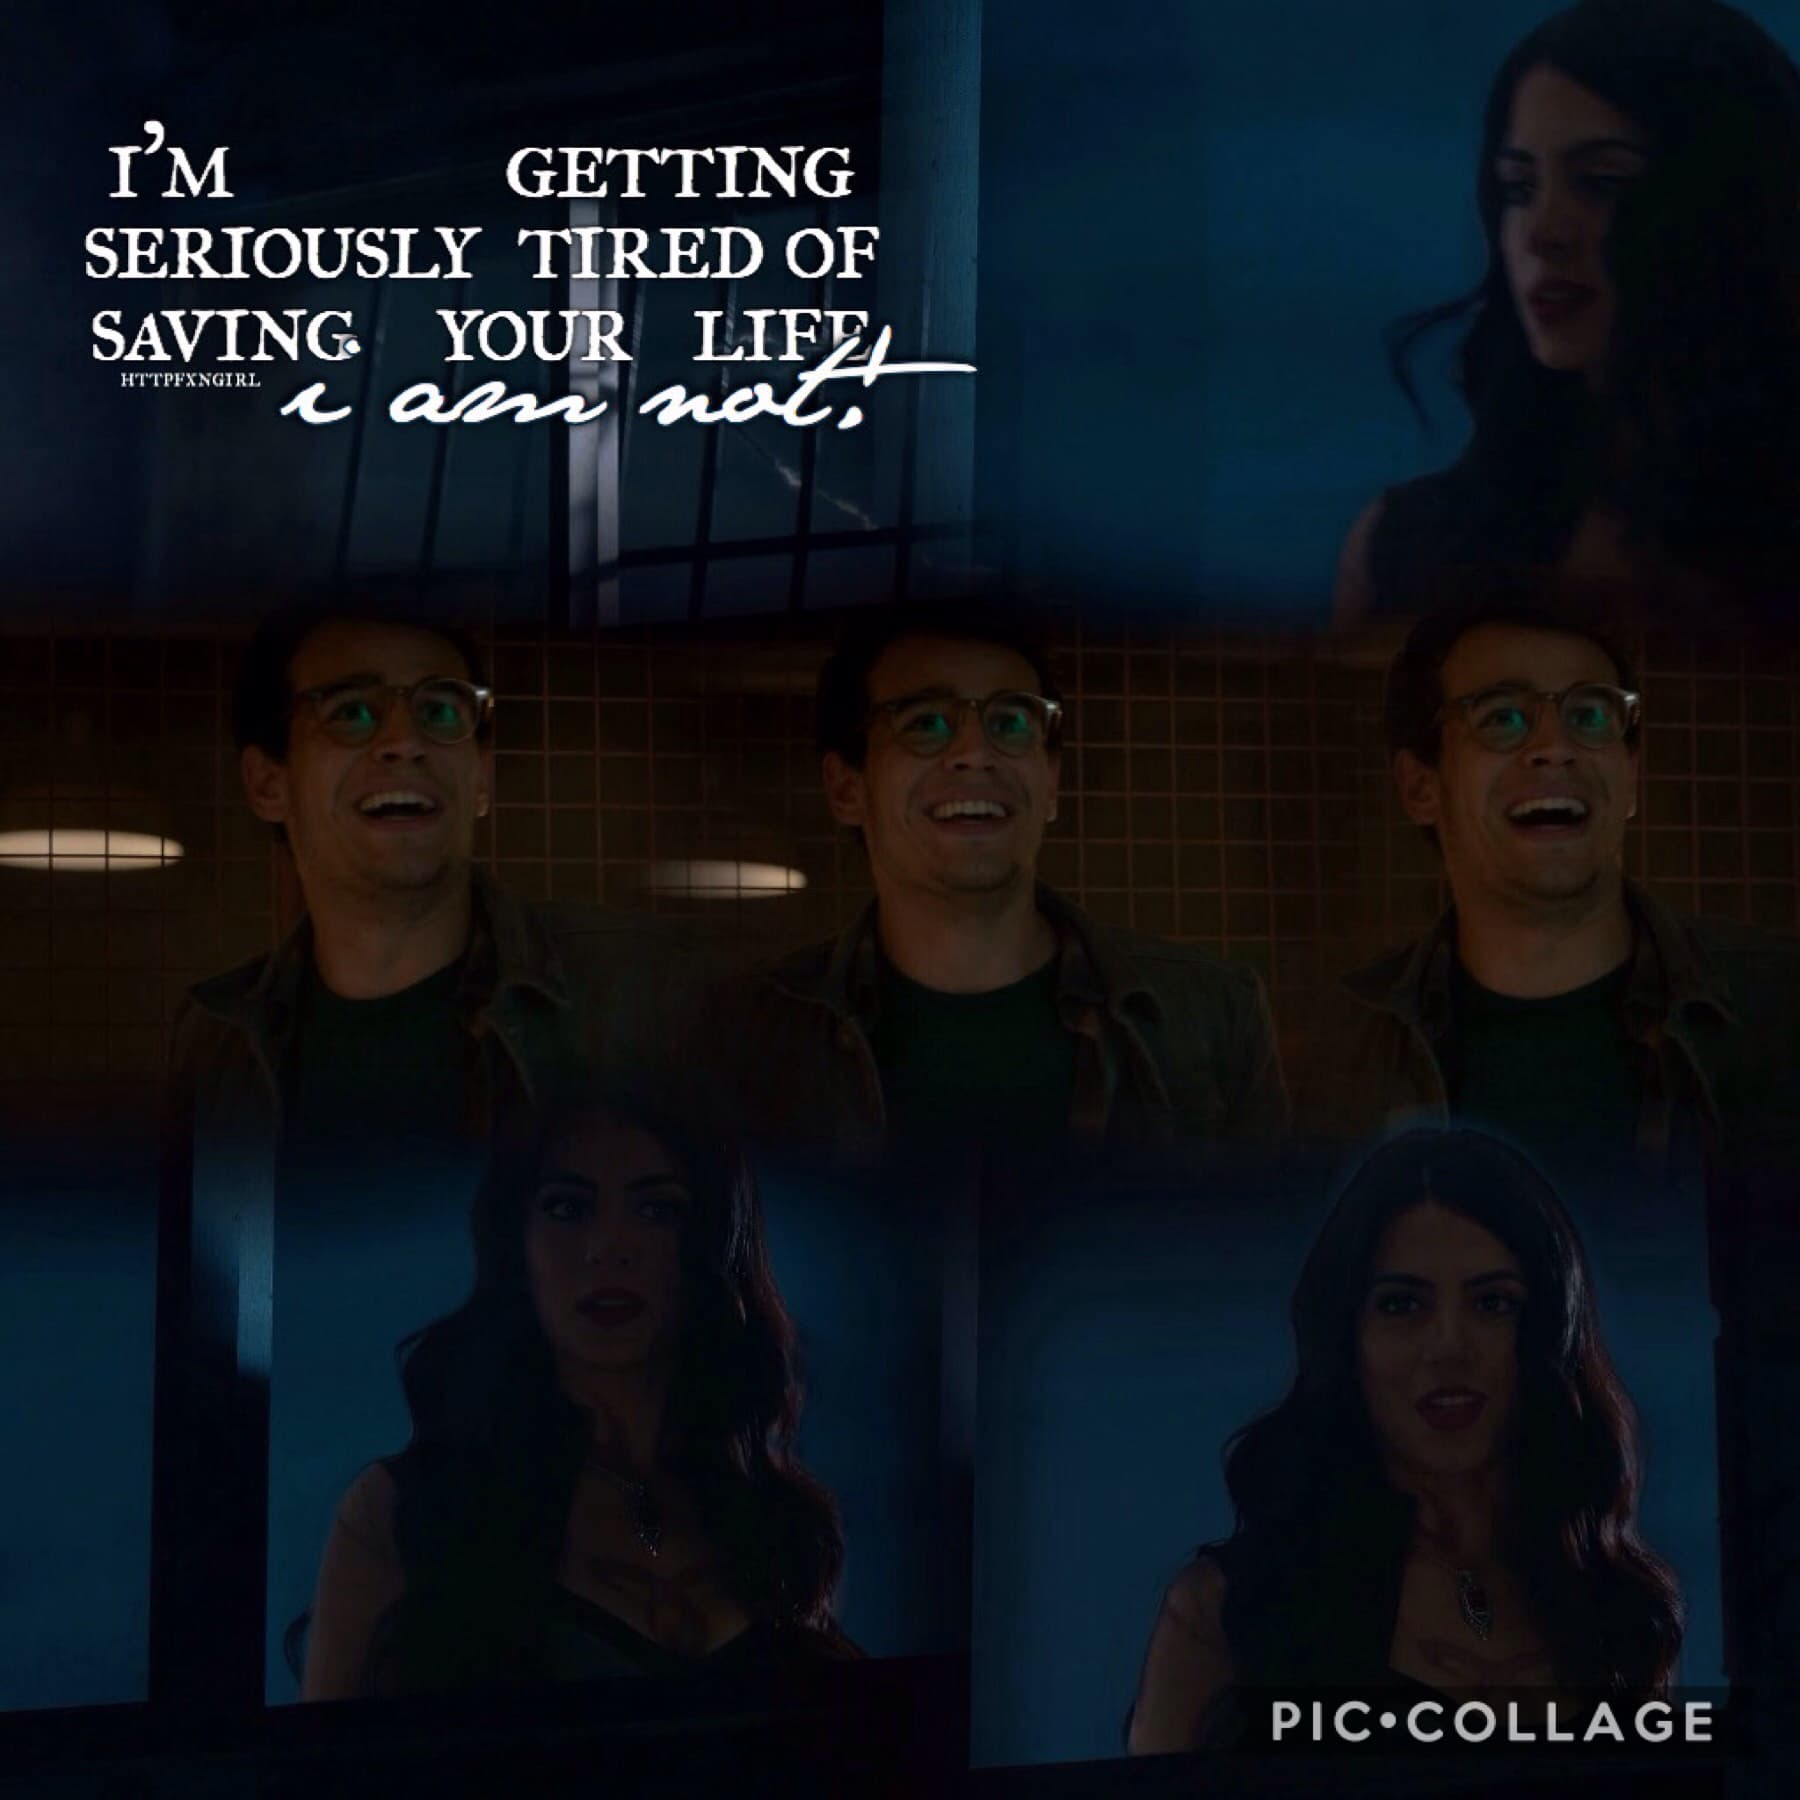 season 1 episode 5 — moo shu to go ➰ i hate this edit so much ewwwww 😭 but there are some waaaay better edits coming for the next few episodes 😉 q// simon before or after he became a vampire? a// i actually really loved nerdy human simon haha 😂